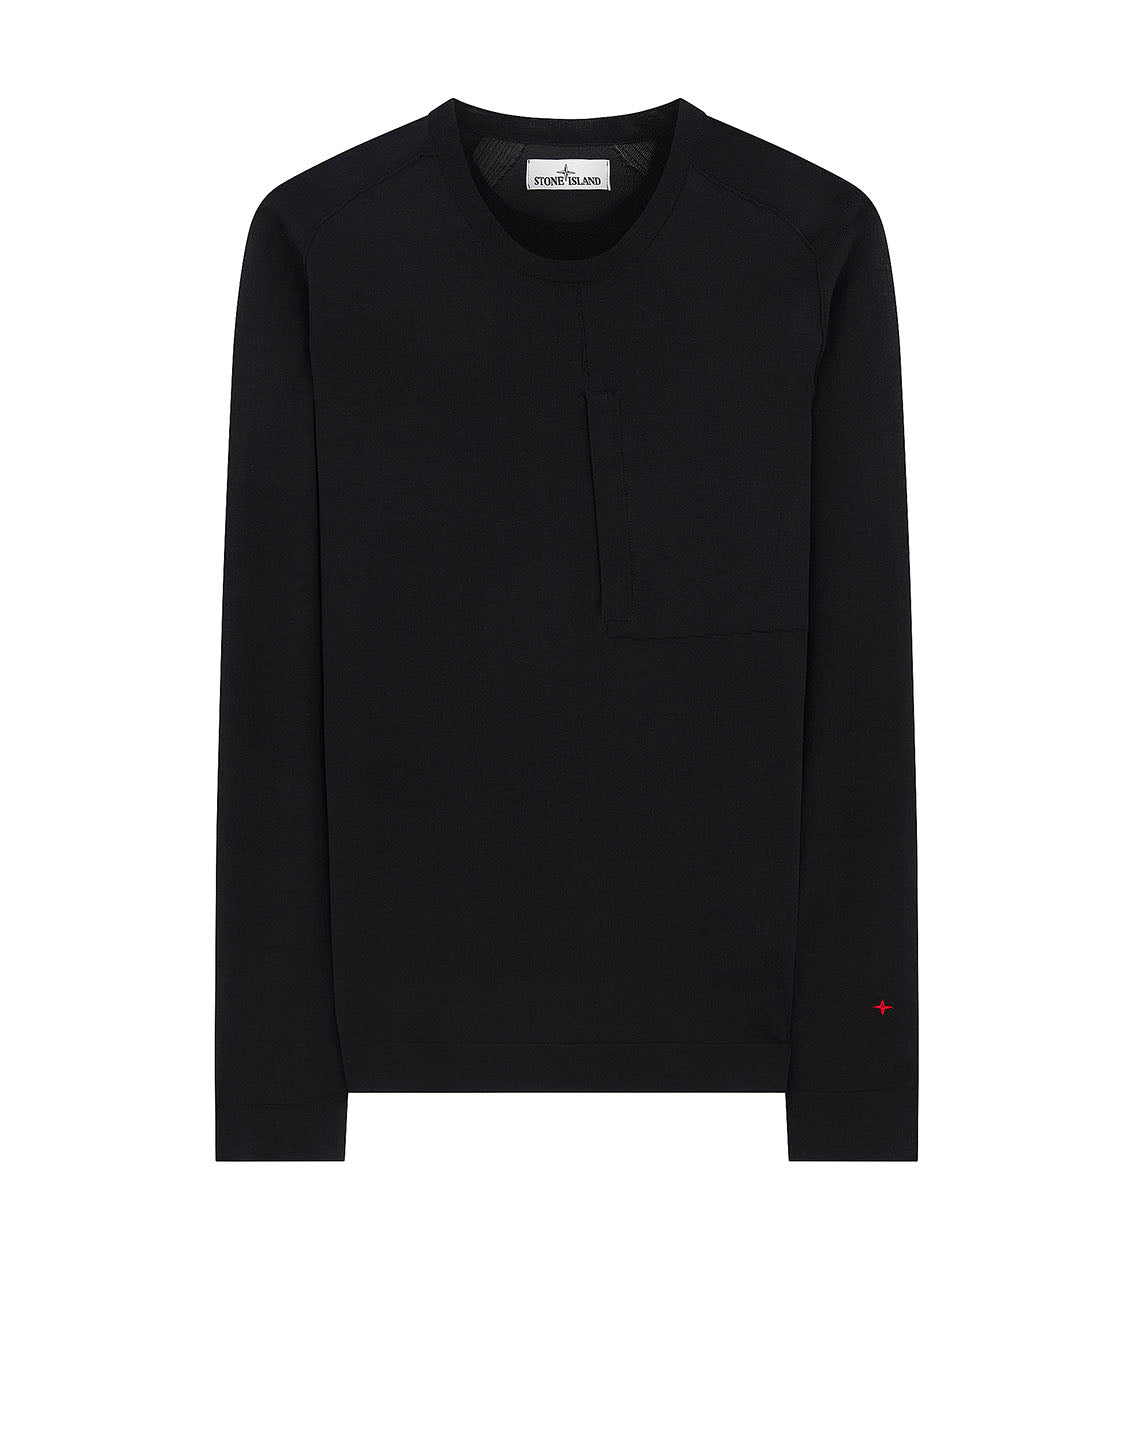 570XA STONE ISLAND MARINA TECHNICAL COTTON / NYLON YARN_THERMO-REGULATOR Knitwear in Black